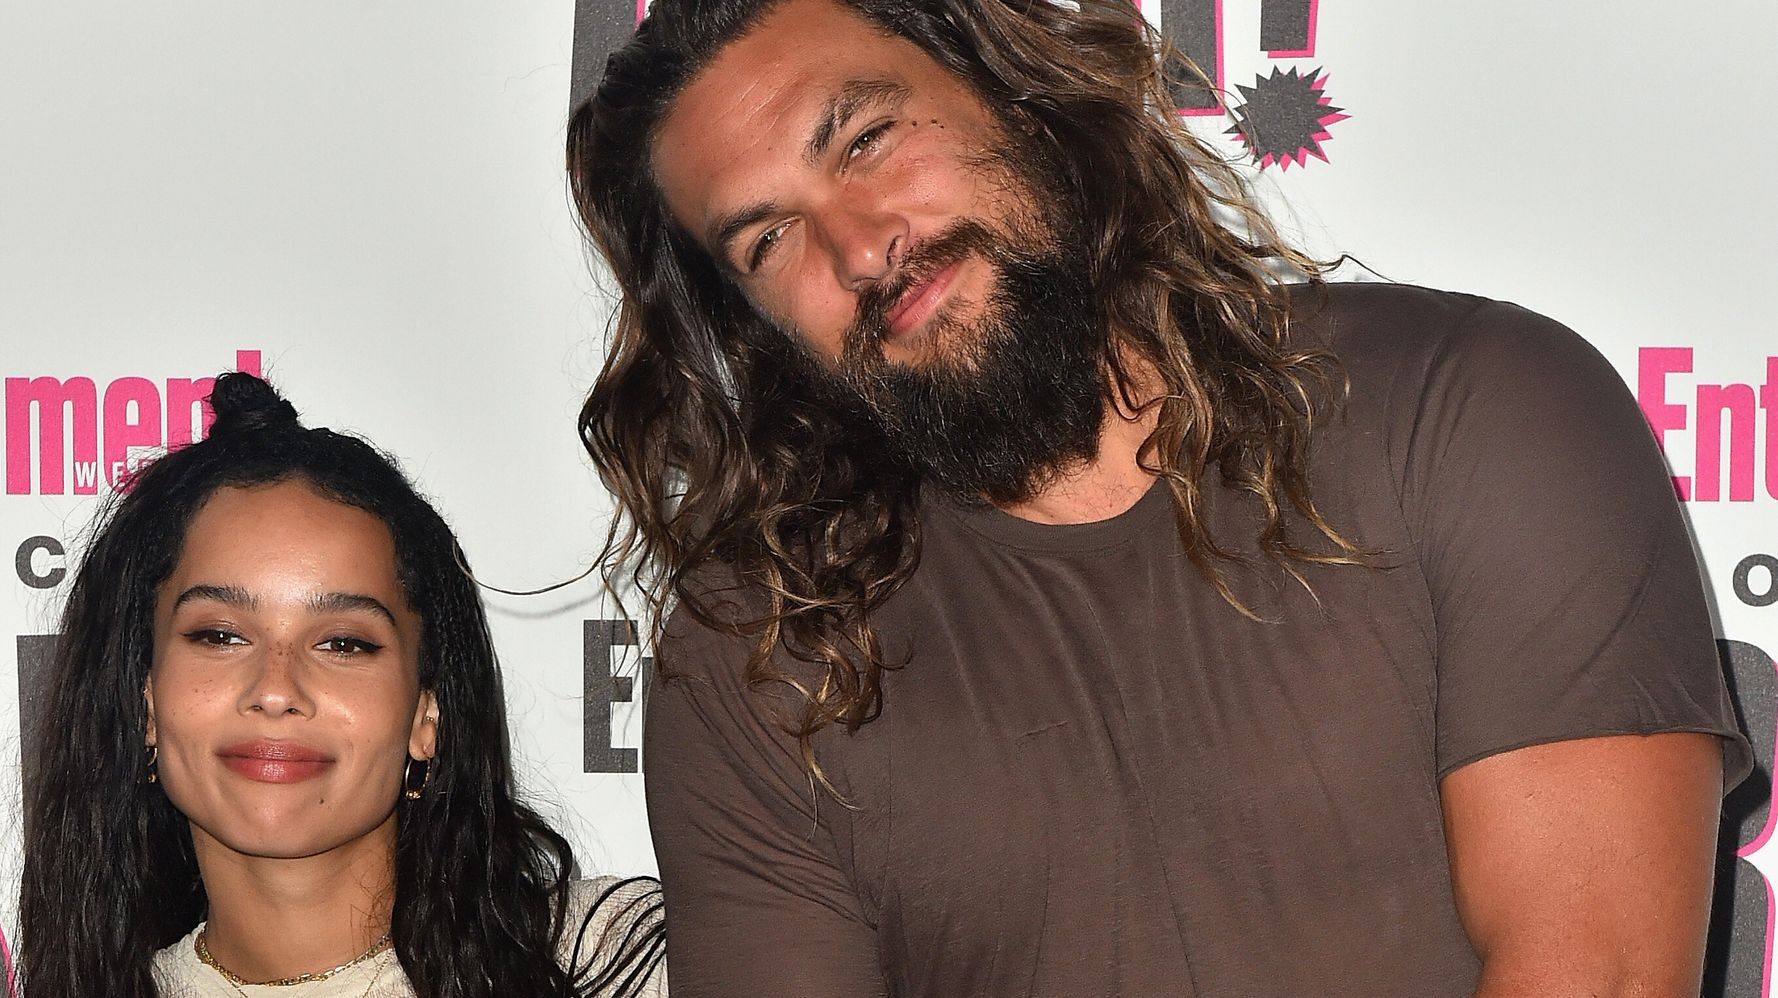 Westlake Legal Group 5da75cc02000009b0d505e44 Jason Momoa Congratulates Zoë Kravitz On Her Catwoman Casting With A Sweet Note